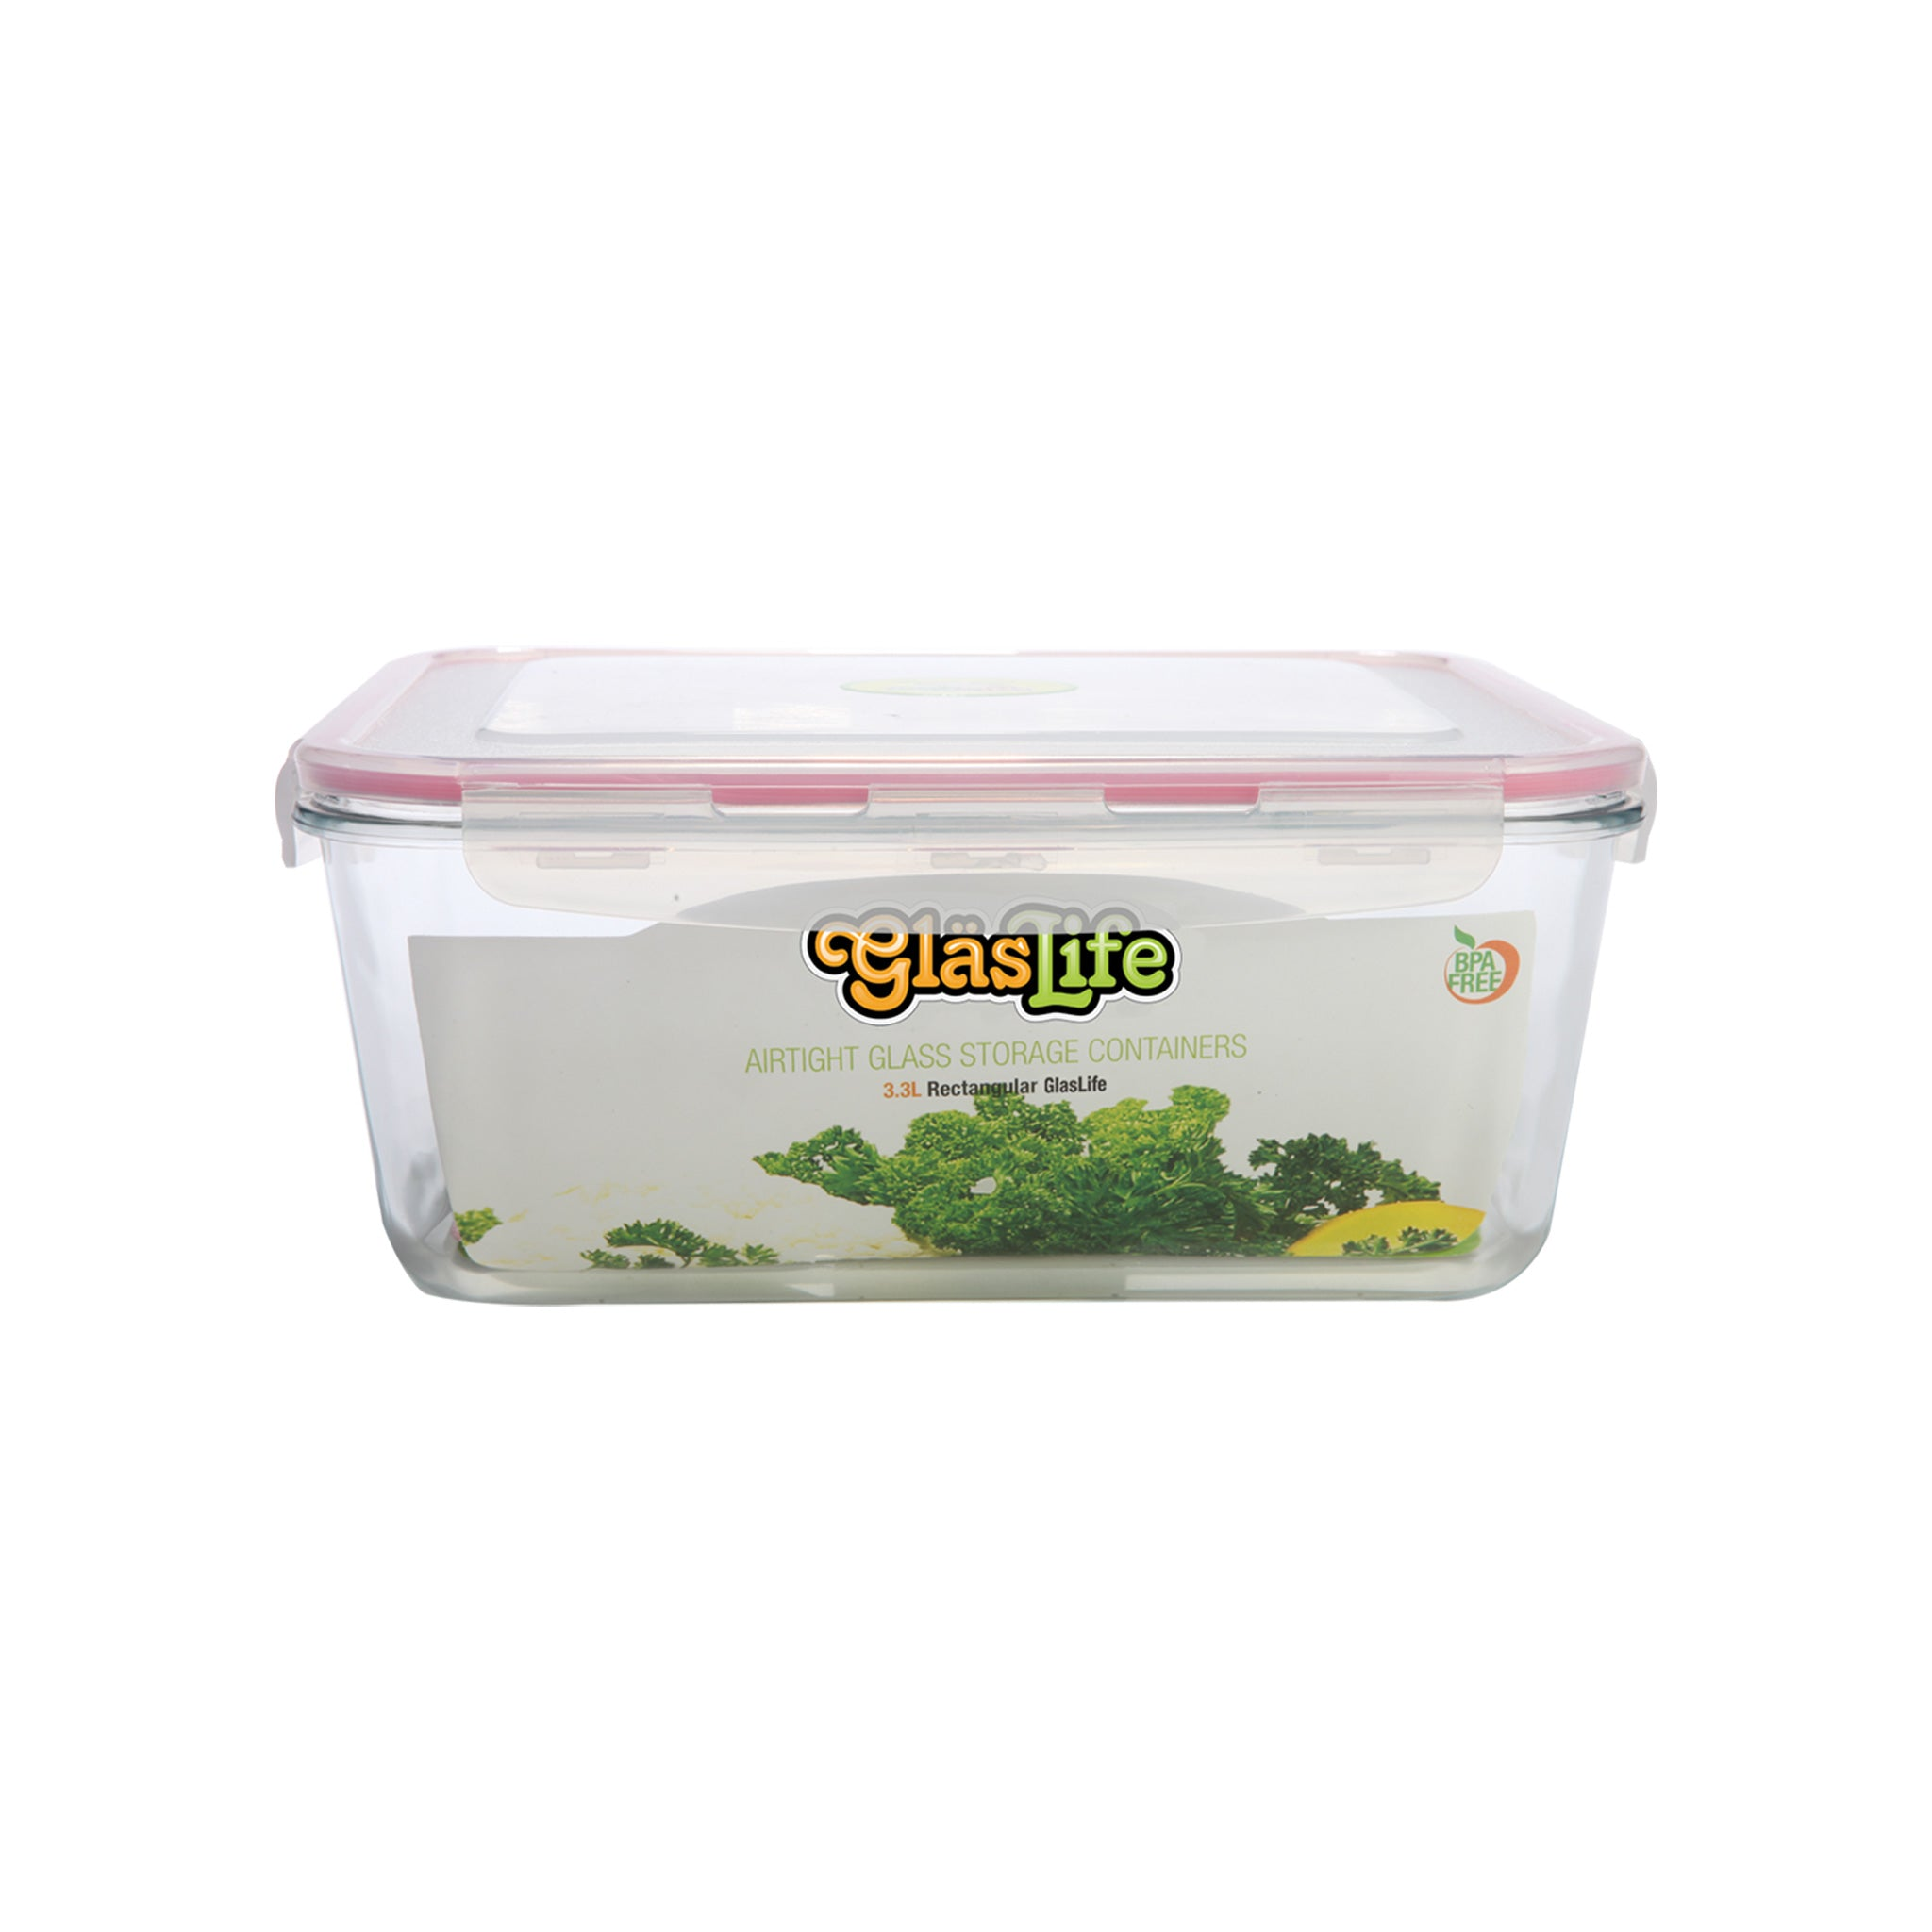 GlasLife® Air-Tight Glass Storage Container - Rectangular GLR10 Medium 34 oz / 1.0 L